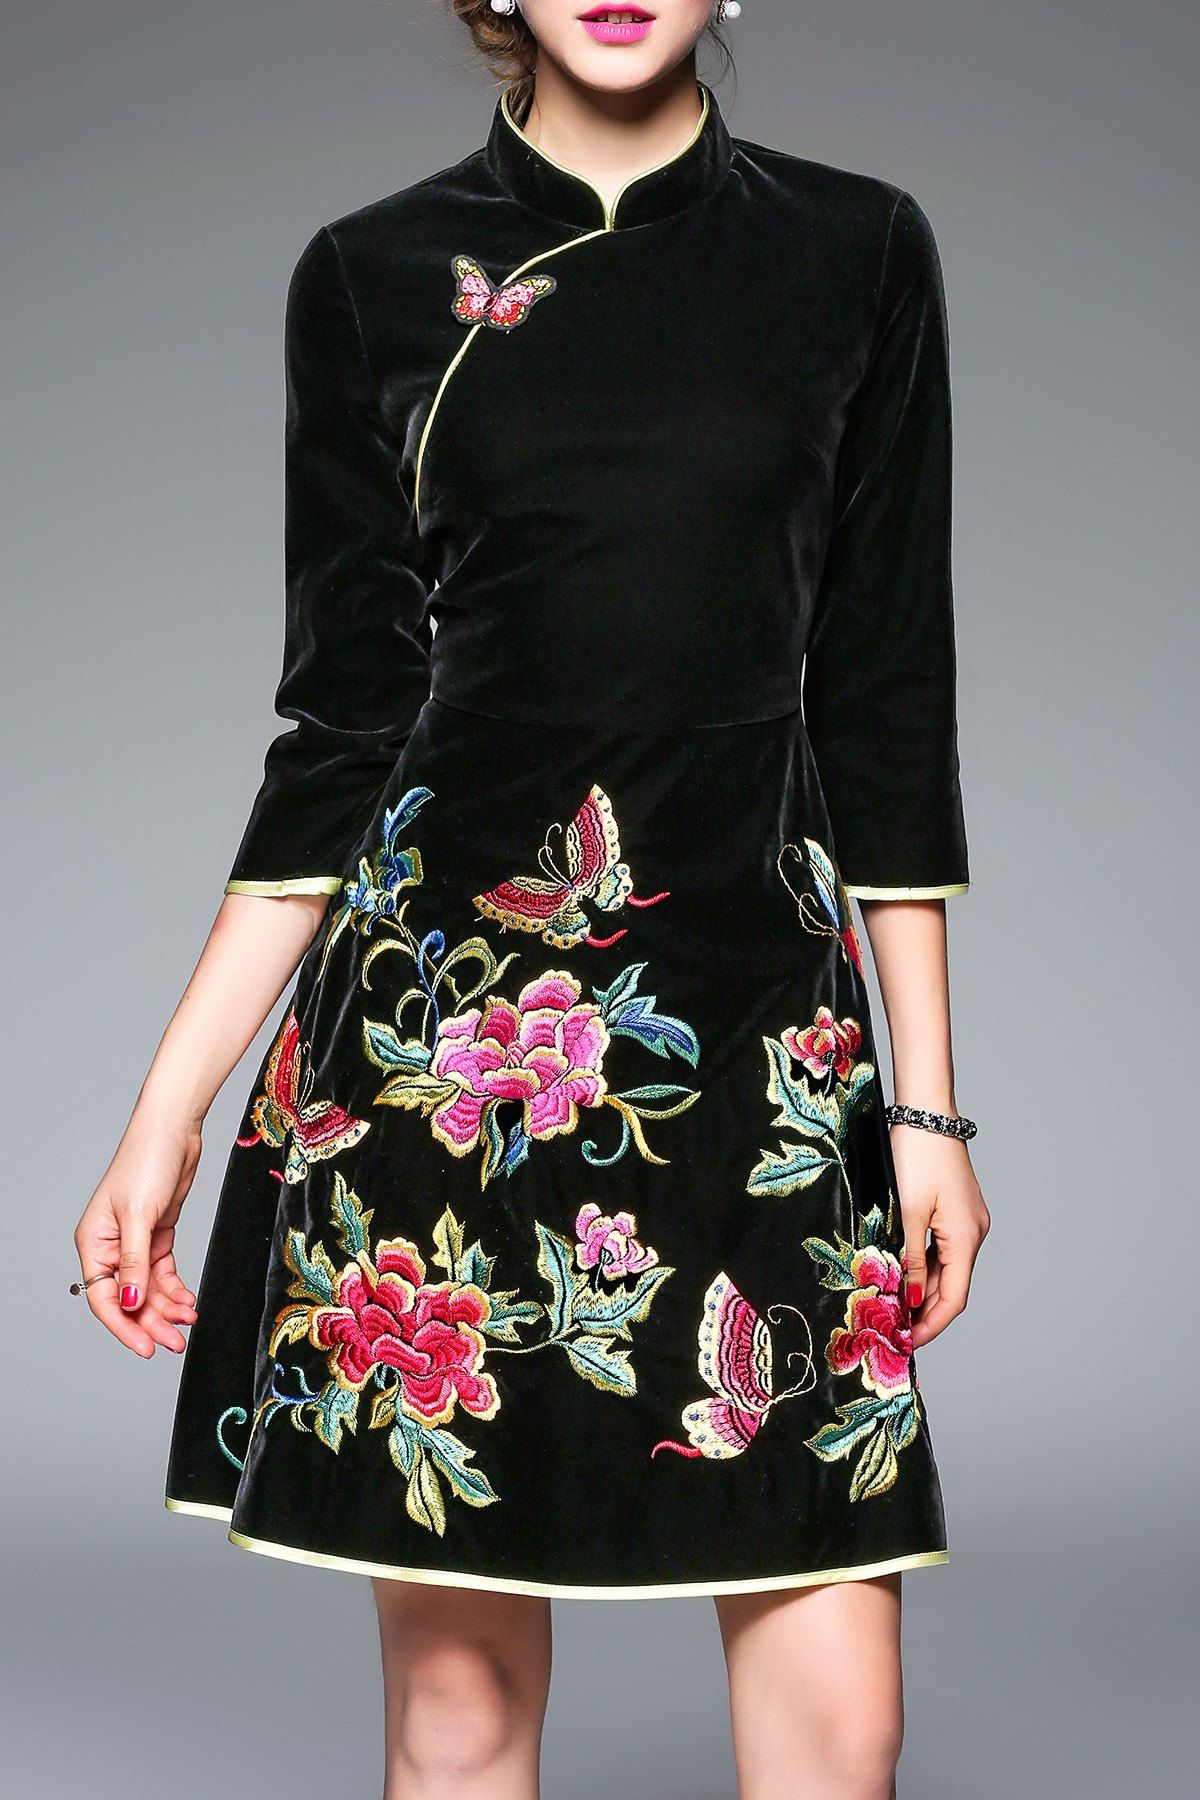 Floral Embroidered Flare Cheongsam Dress | Fashion | Pinterest ...